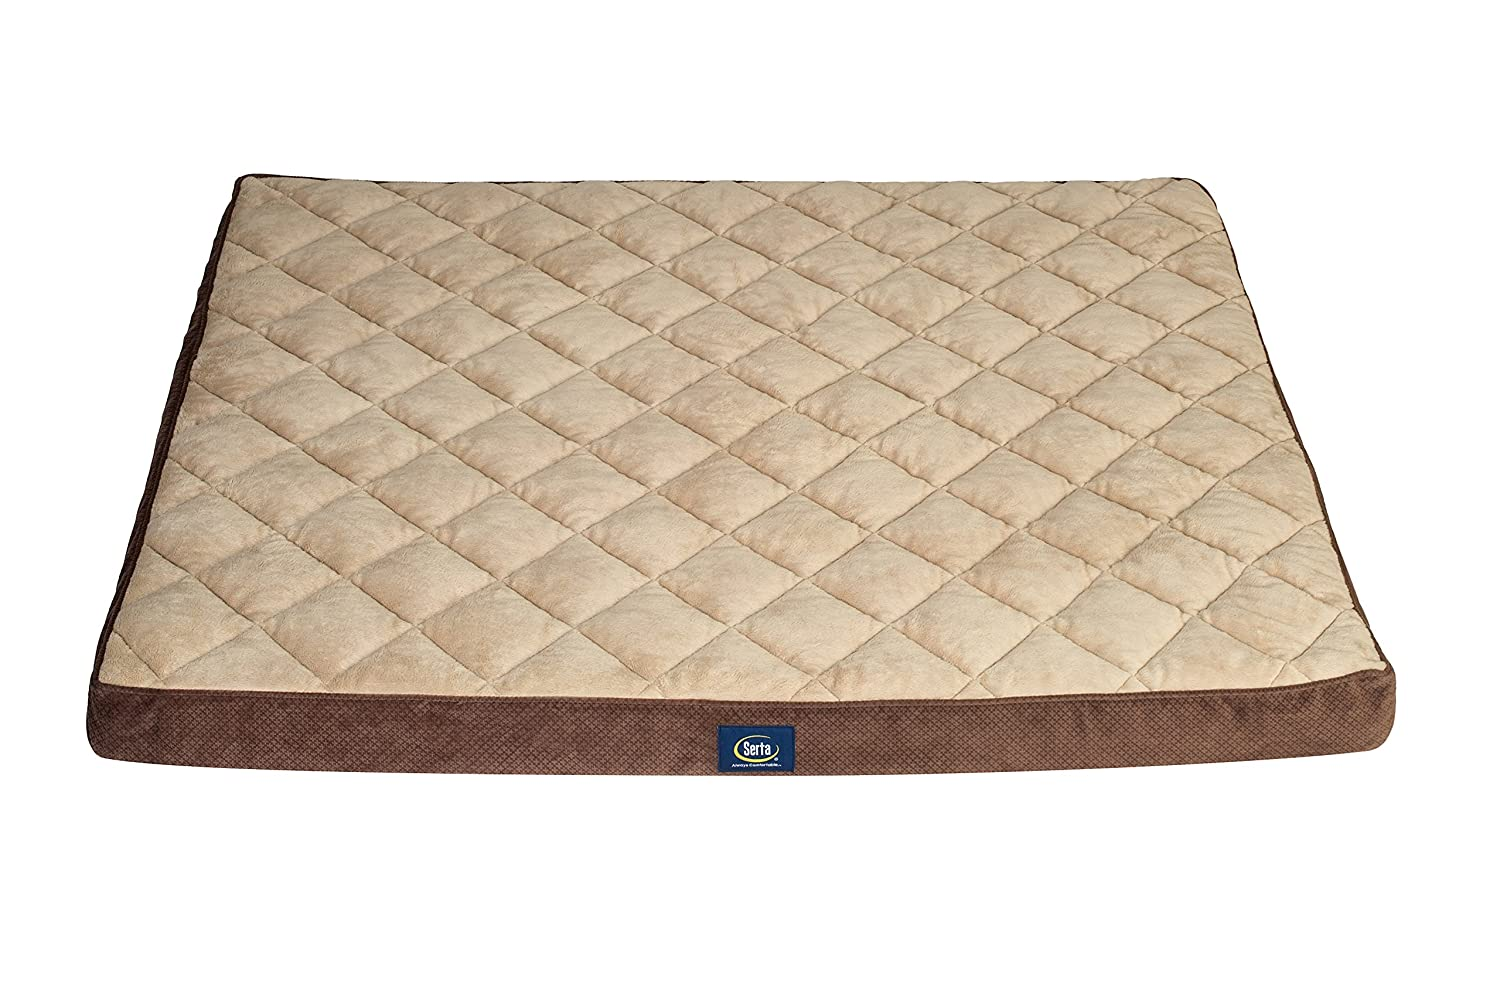 Serta Ortho Quilted Pillowtop Pet Bed